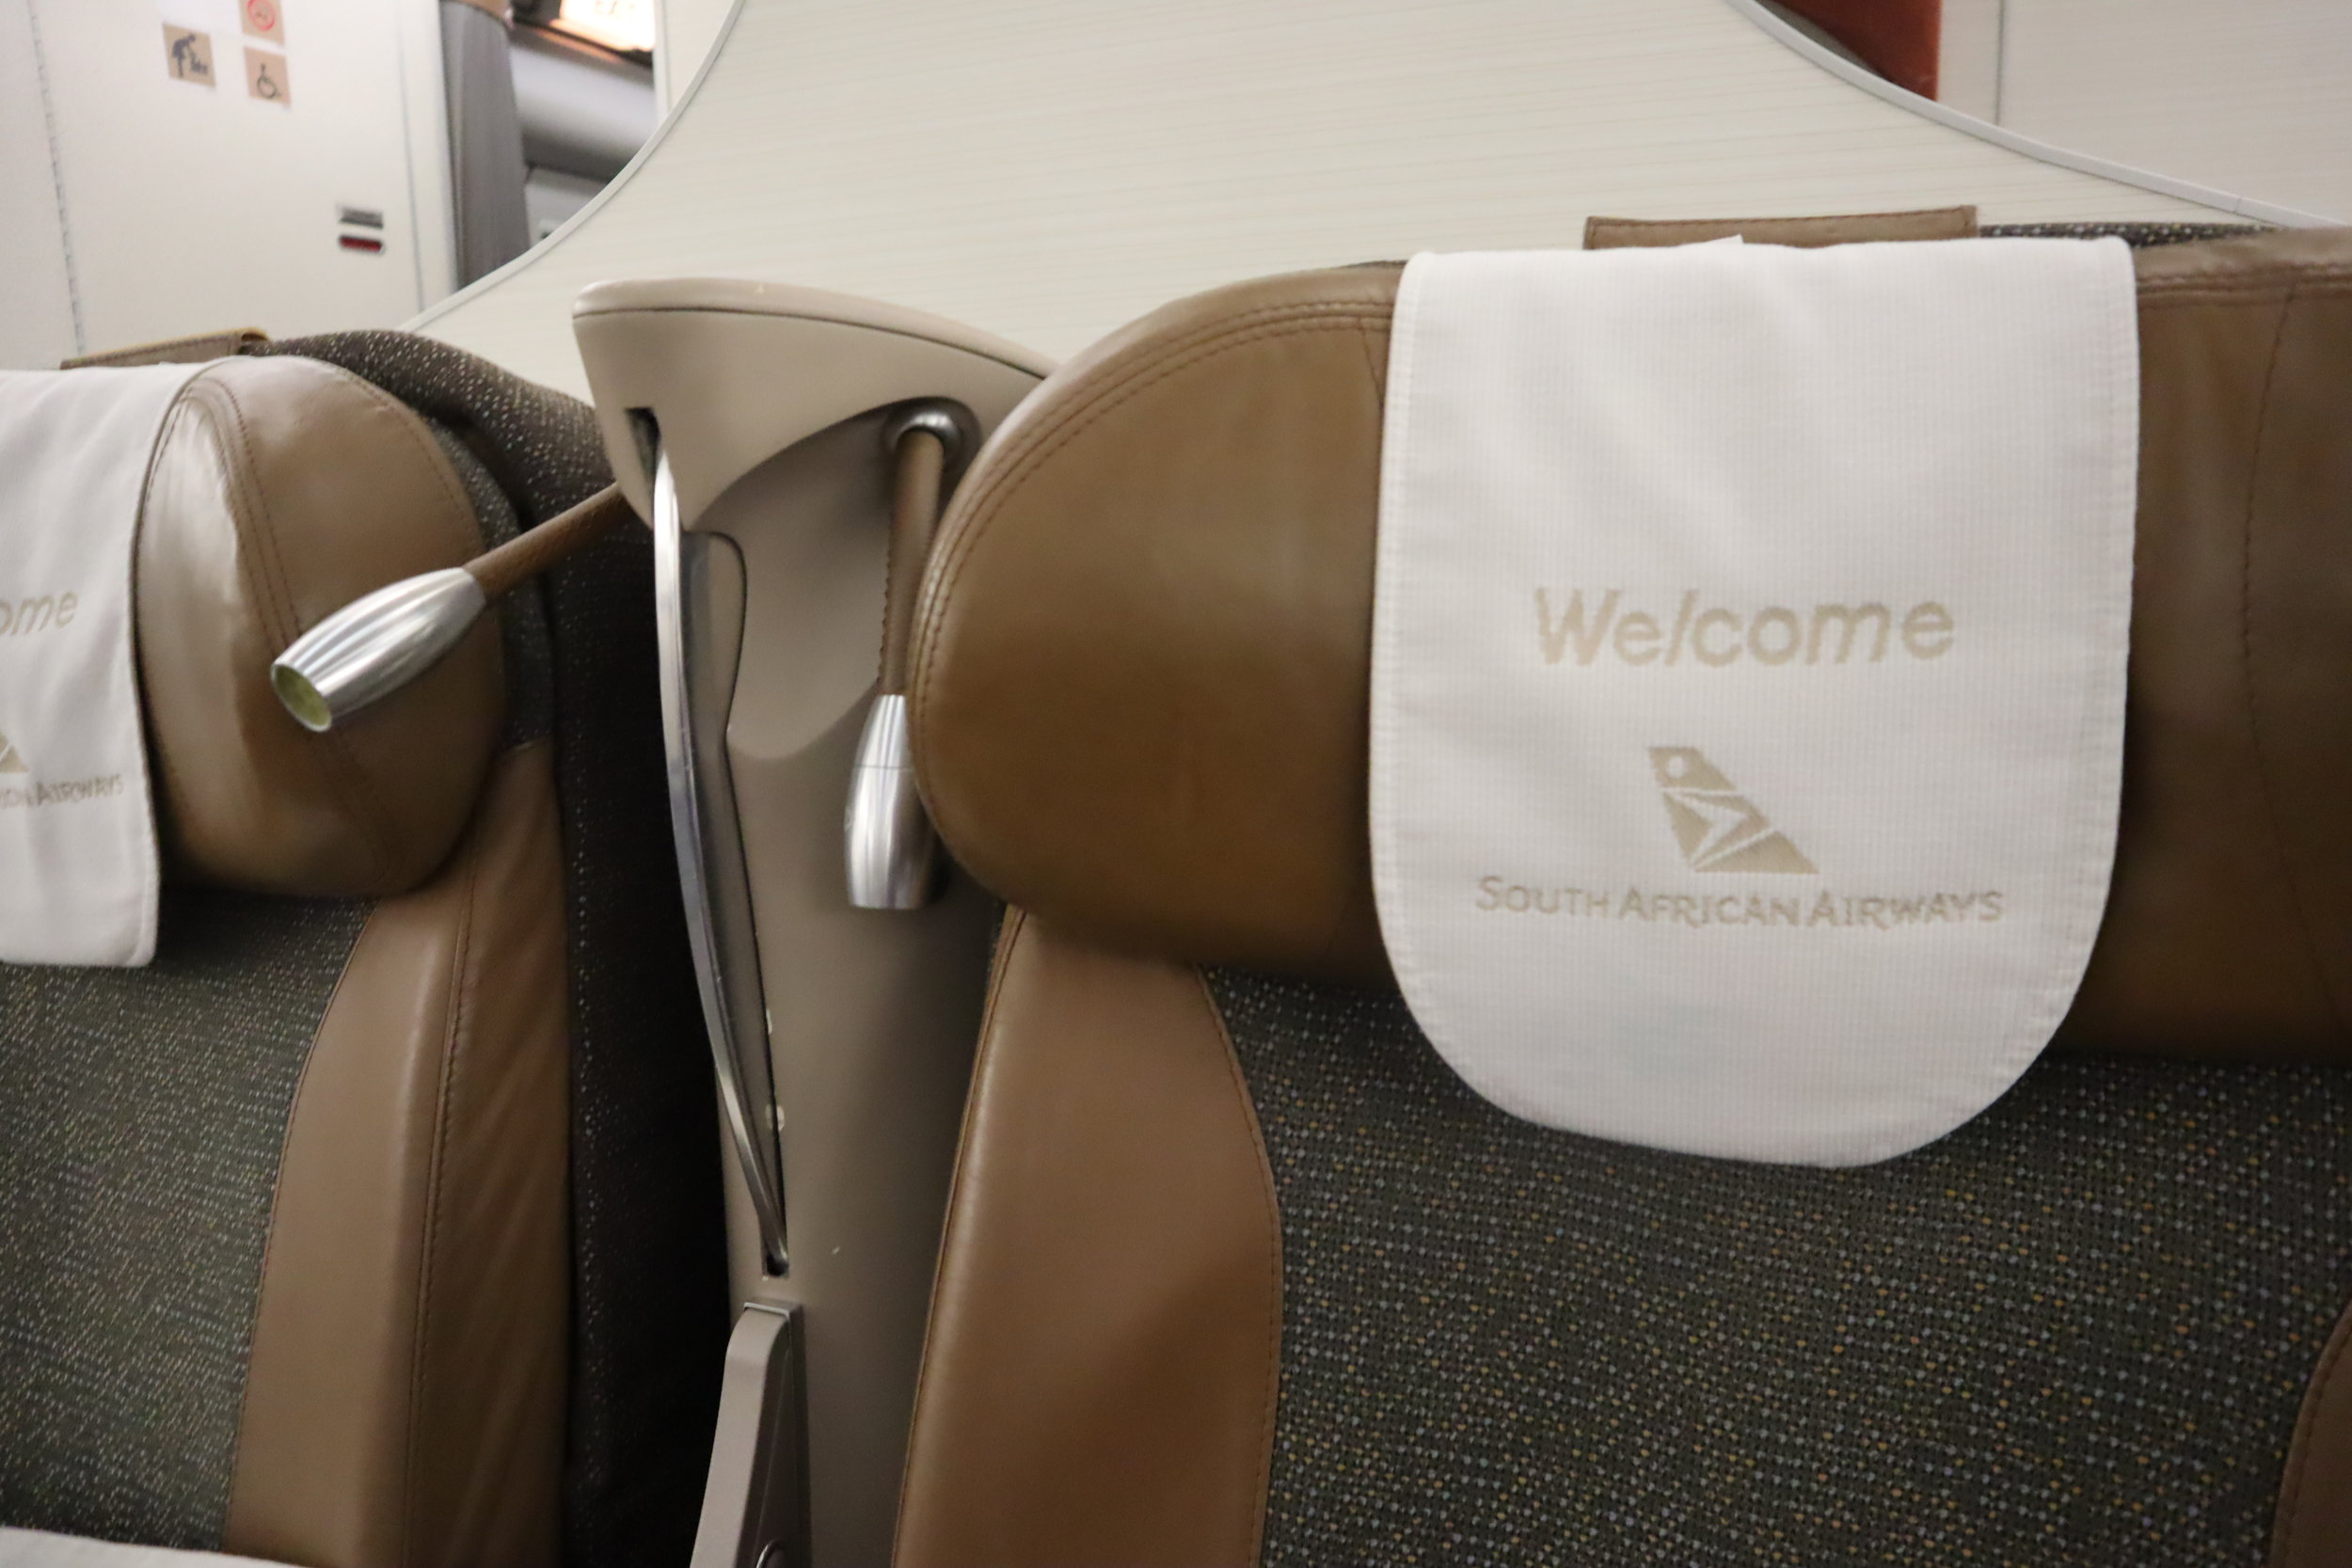 South African Airways business class – Reading lights